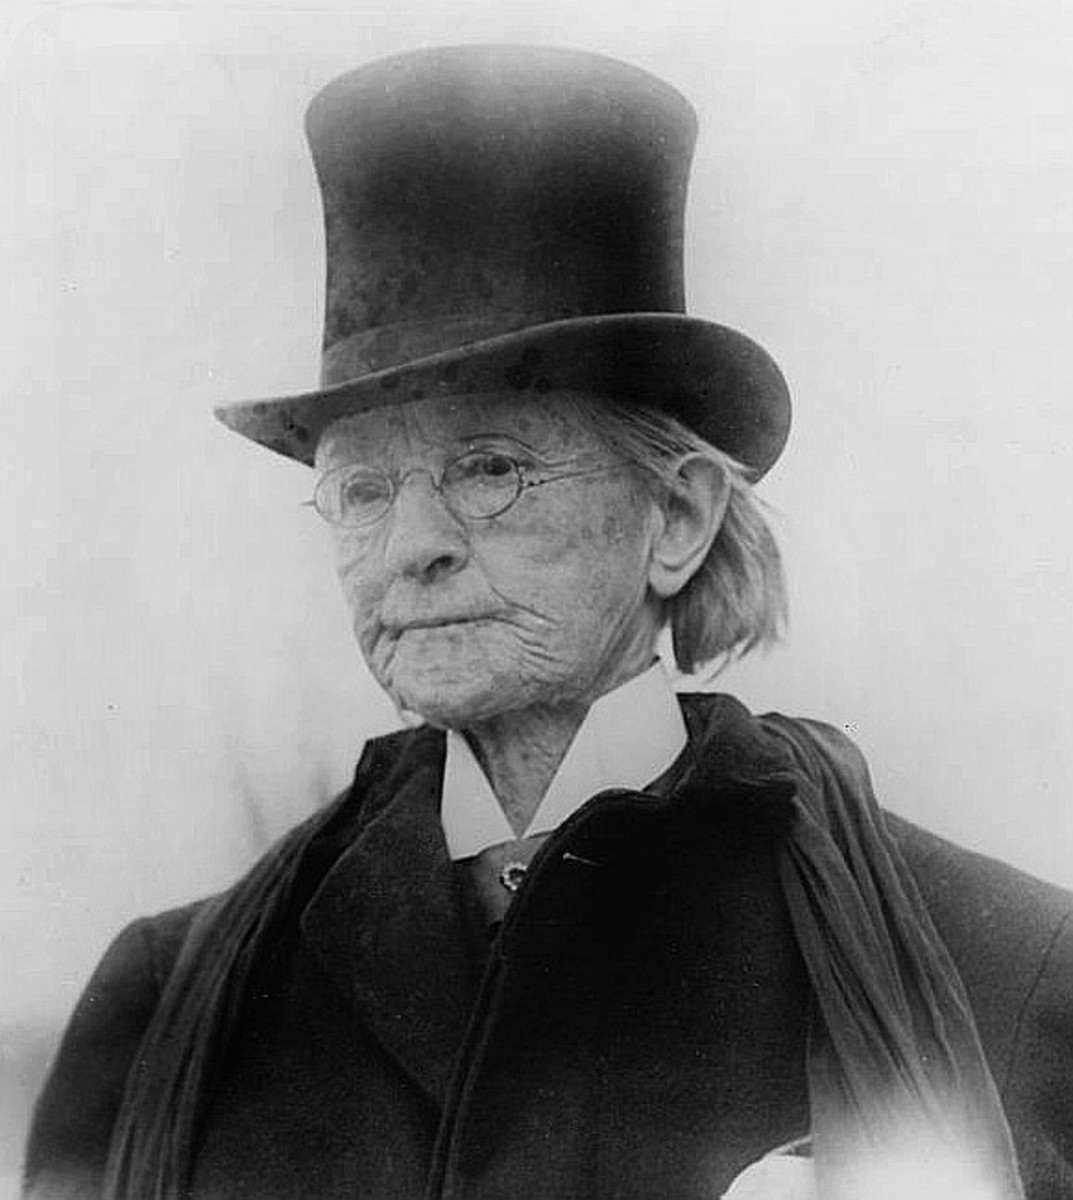 Mary Walker wearing men's style clothing